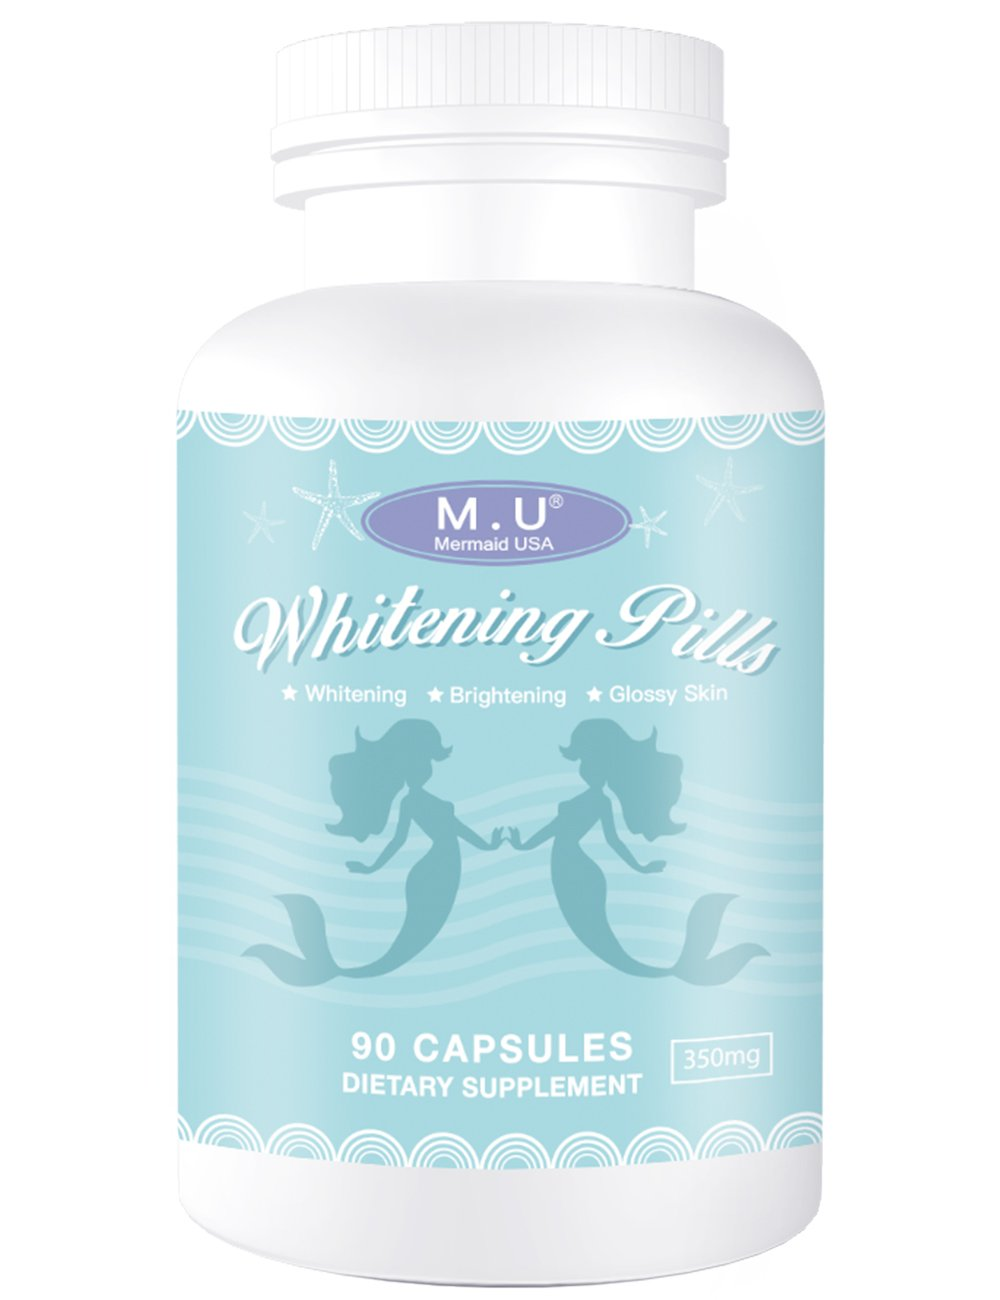 M.U Mermaid USA Whitening Pills for Skin 3 Times Effect of glutathione, Focus on Glowing brightening Smoothy Skin Support Dark spot Remover Acne Scar Remover by M.U